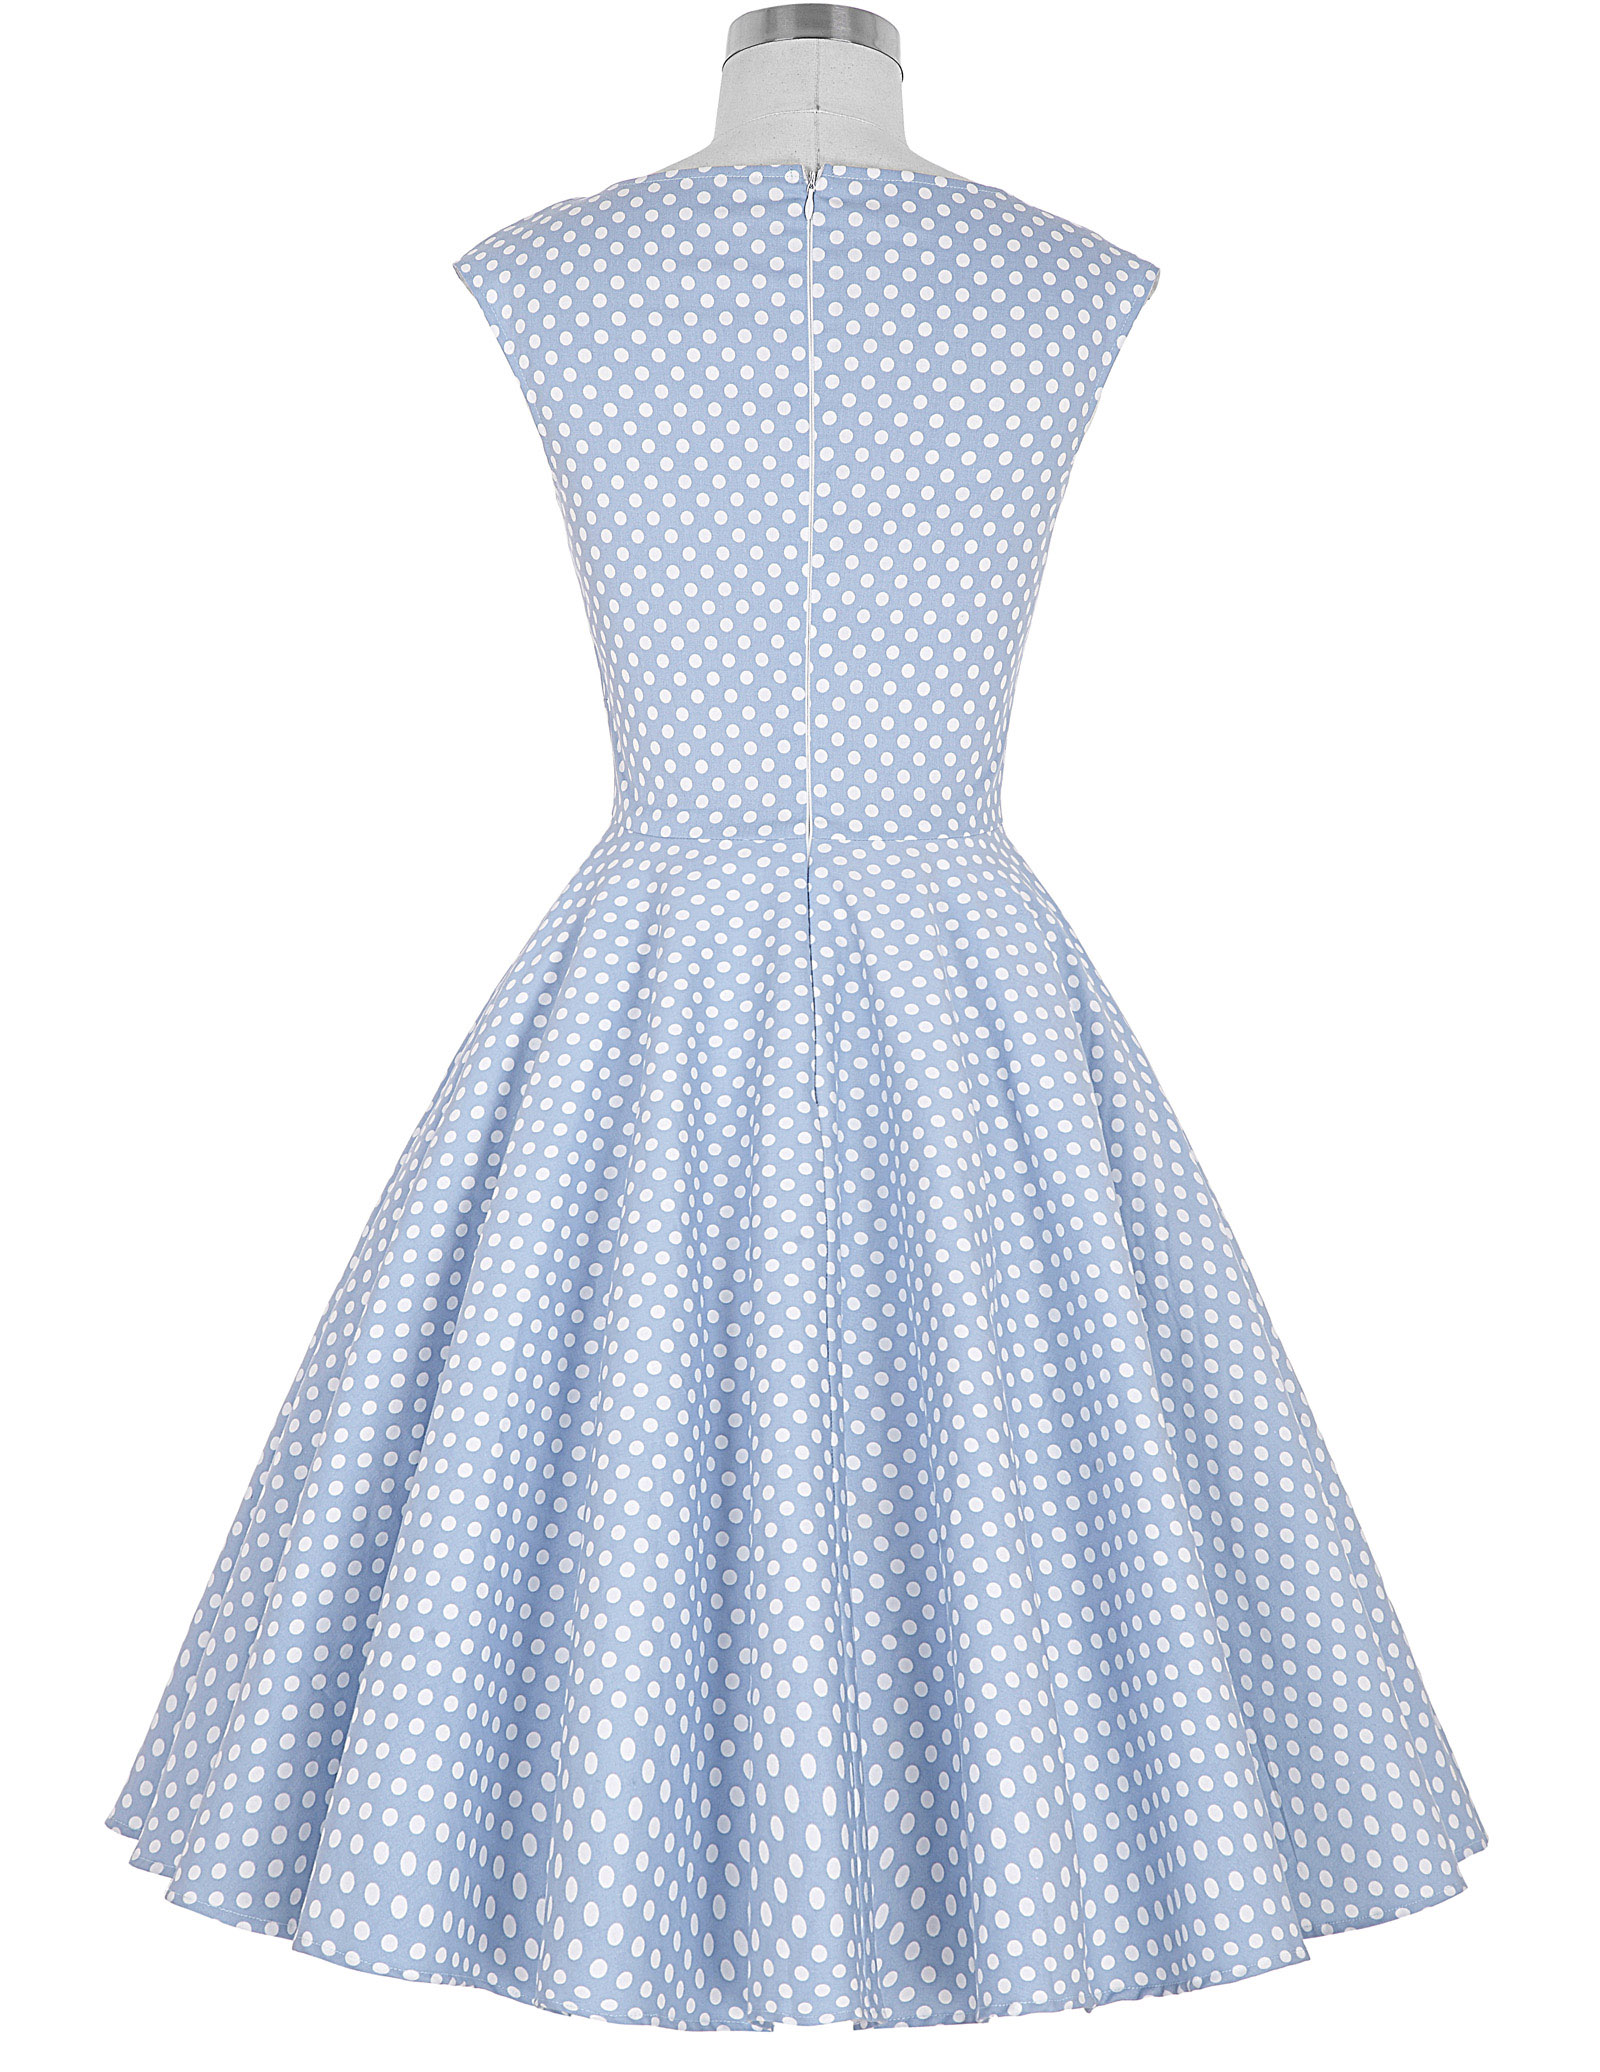 Summer Women Sleeveless Polka Dots Dress Floral Pinup Zippers Vintage Retro Party V-Neck Tank Swing A-Line Dress